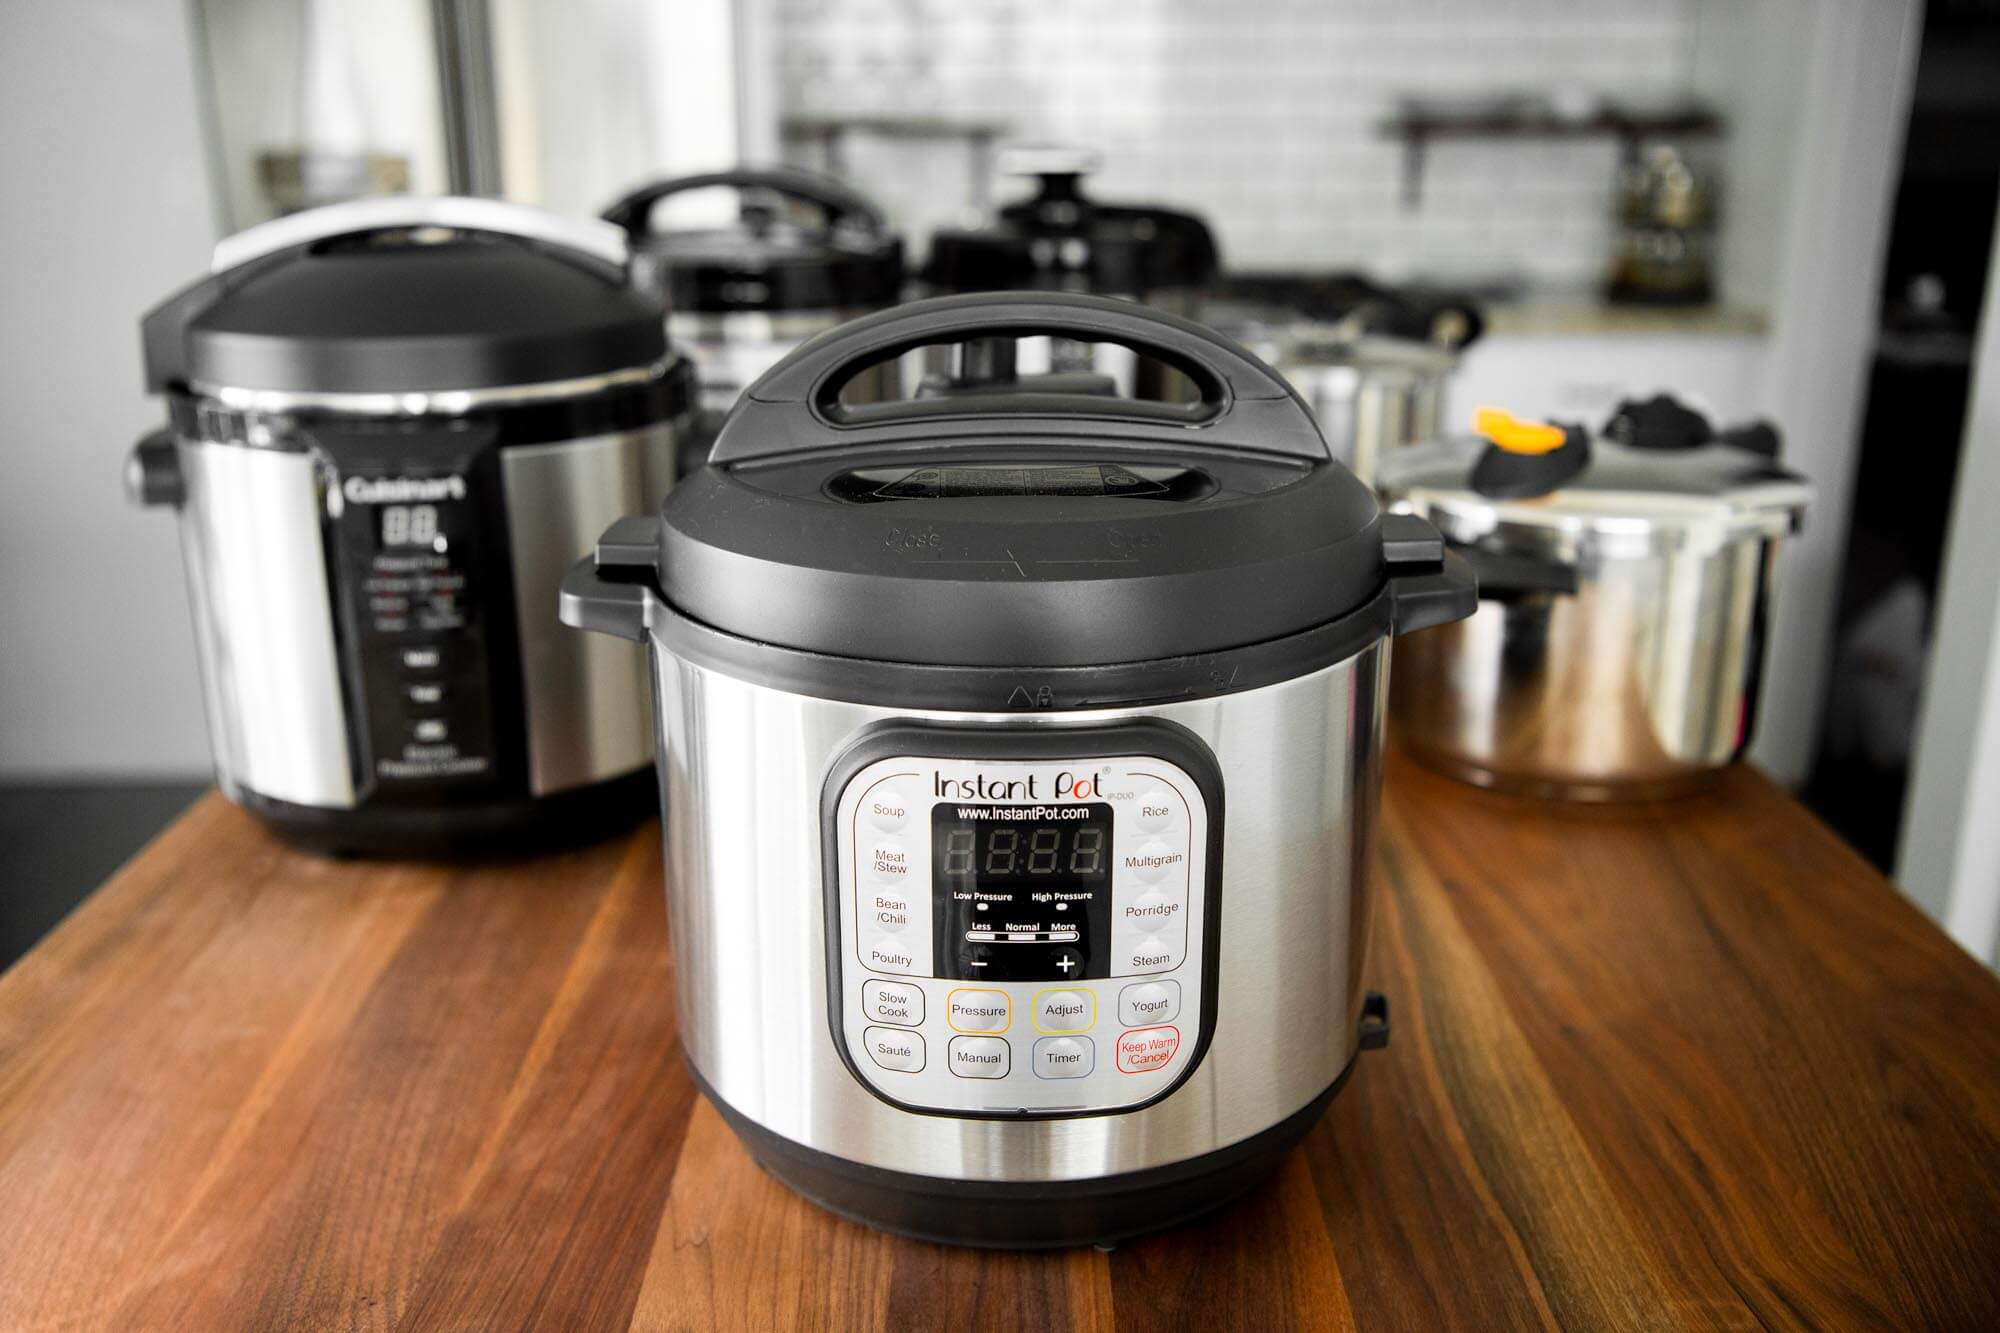 Big W Pressure Cooker The Best Pressure Cooker Of 2019 Your Best Digs